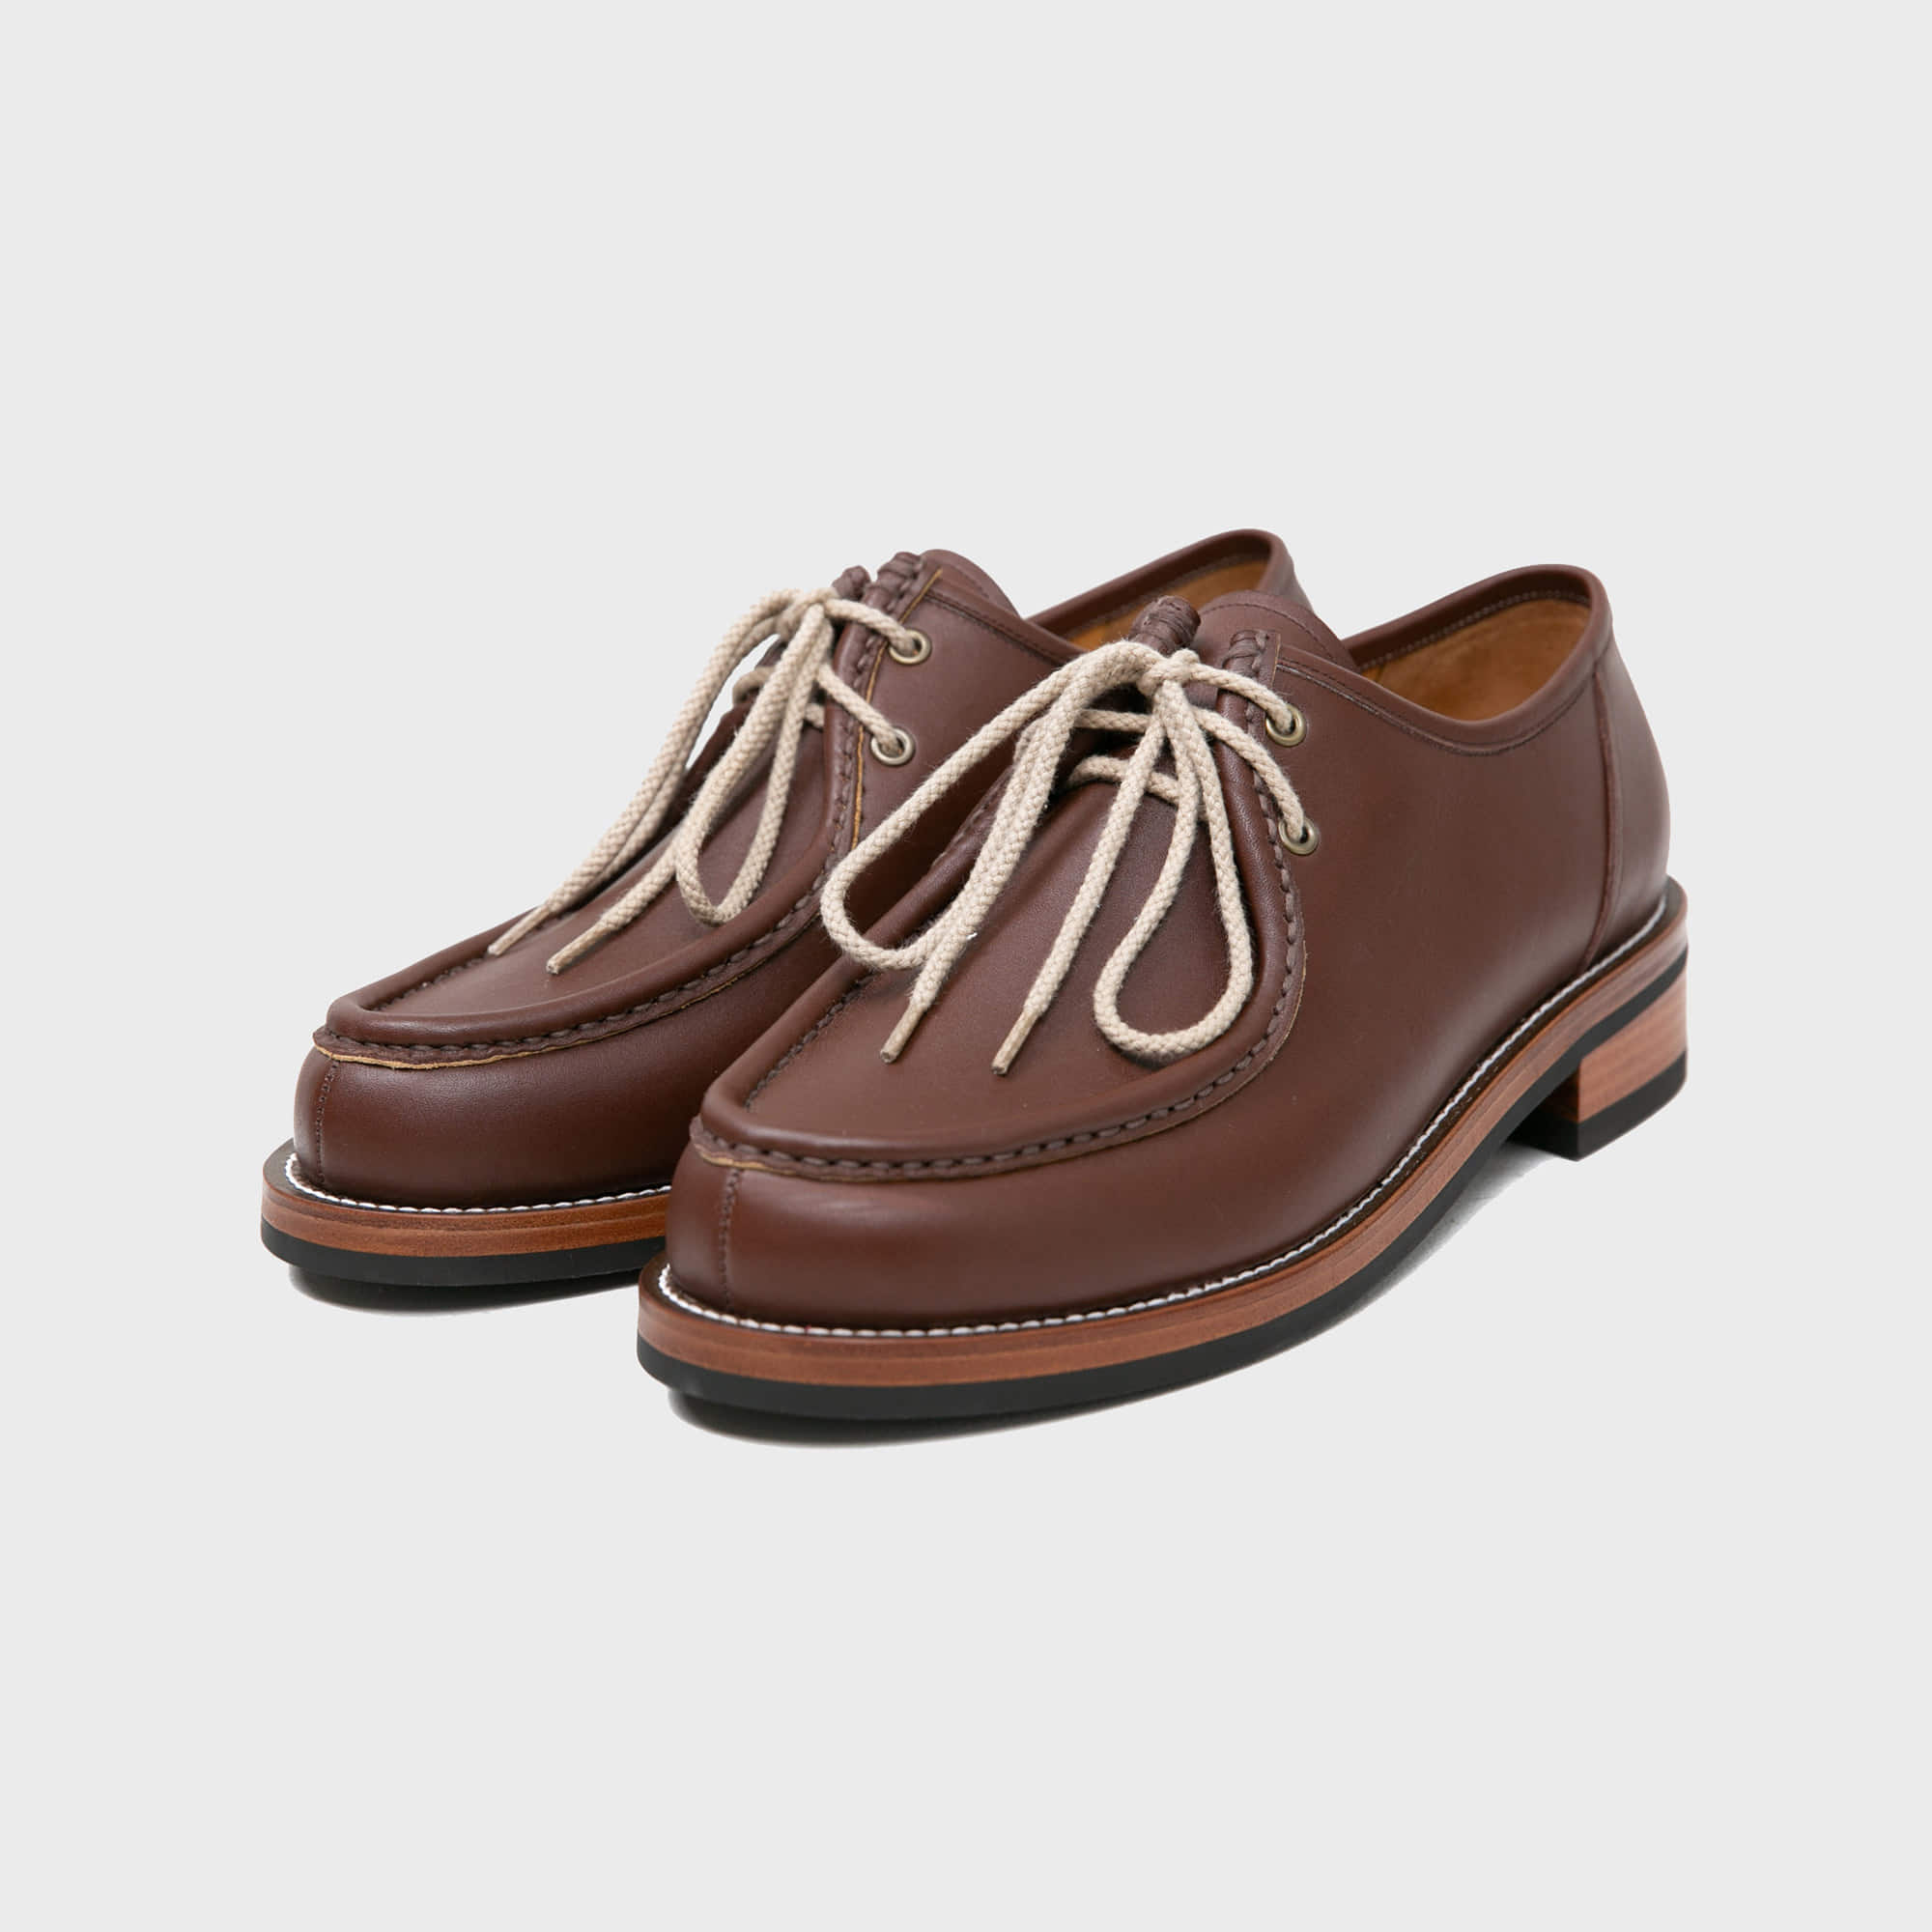 [BILLYS&CO X ANGLAN] Tyrolean Derby Shoes - Brown